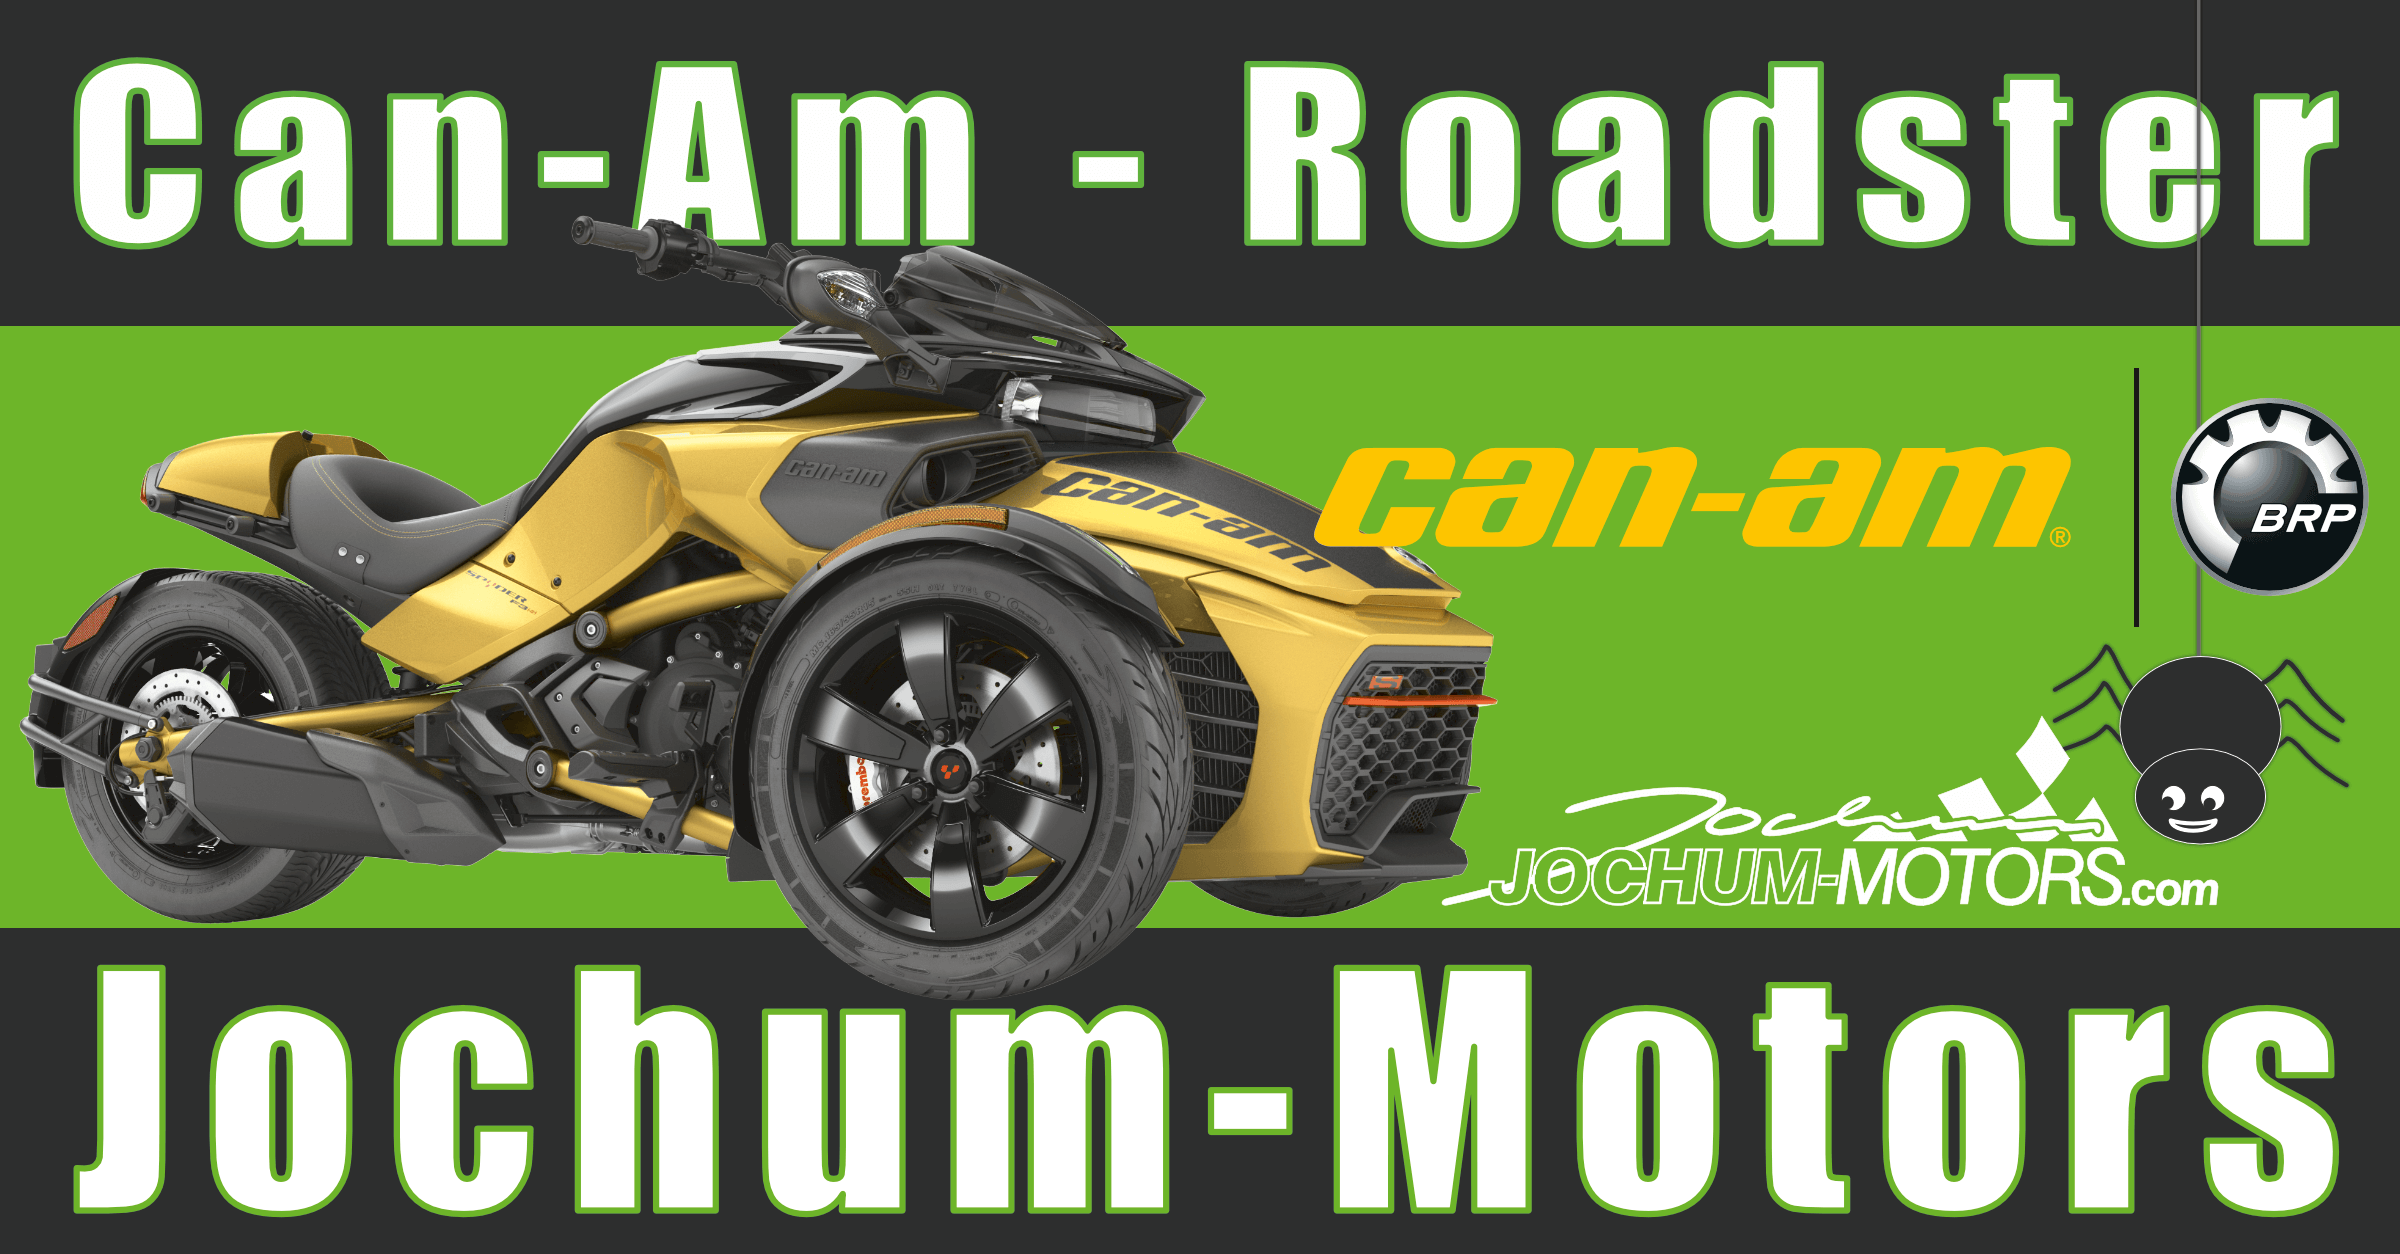 Can-Am Roadster - Spyder